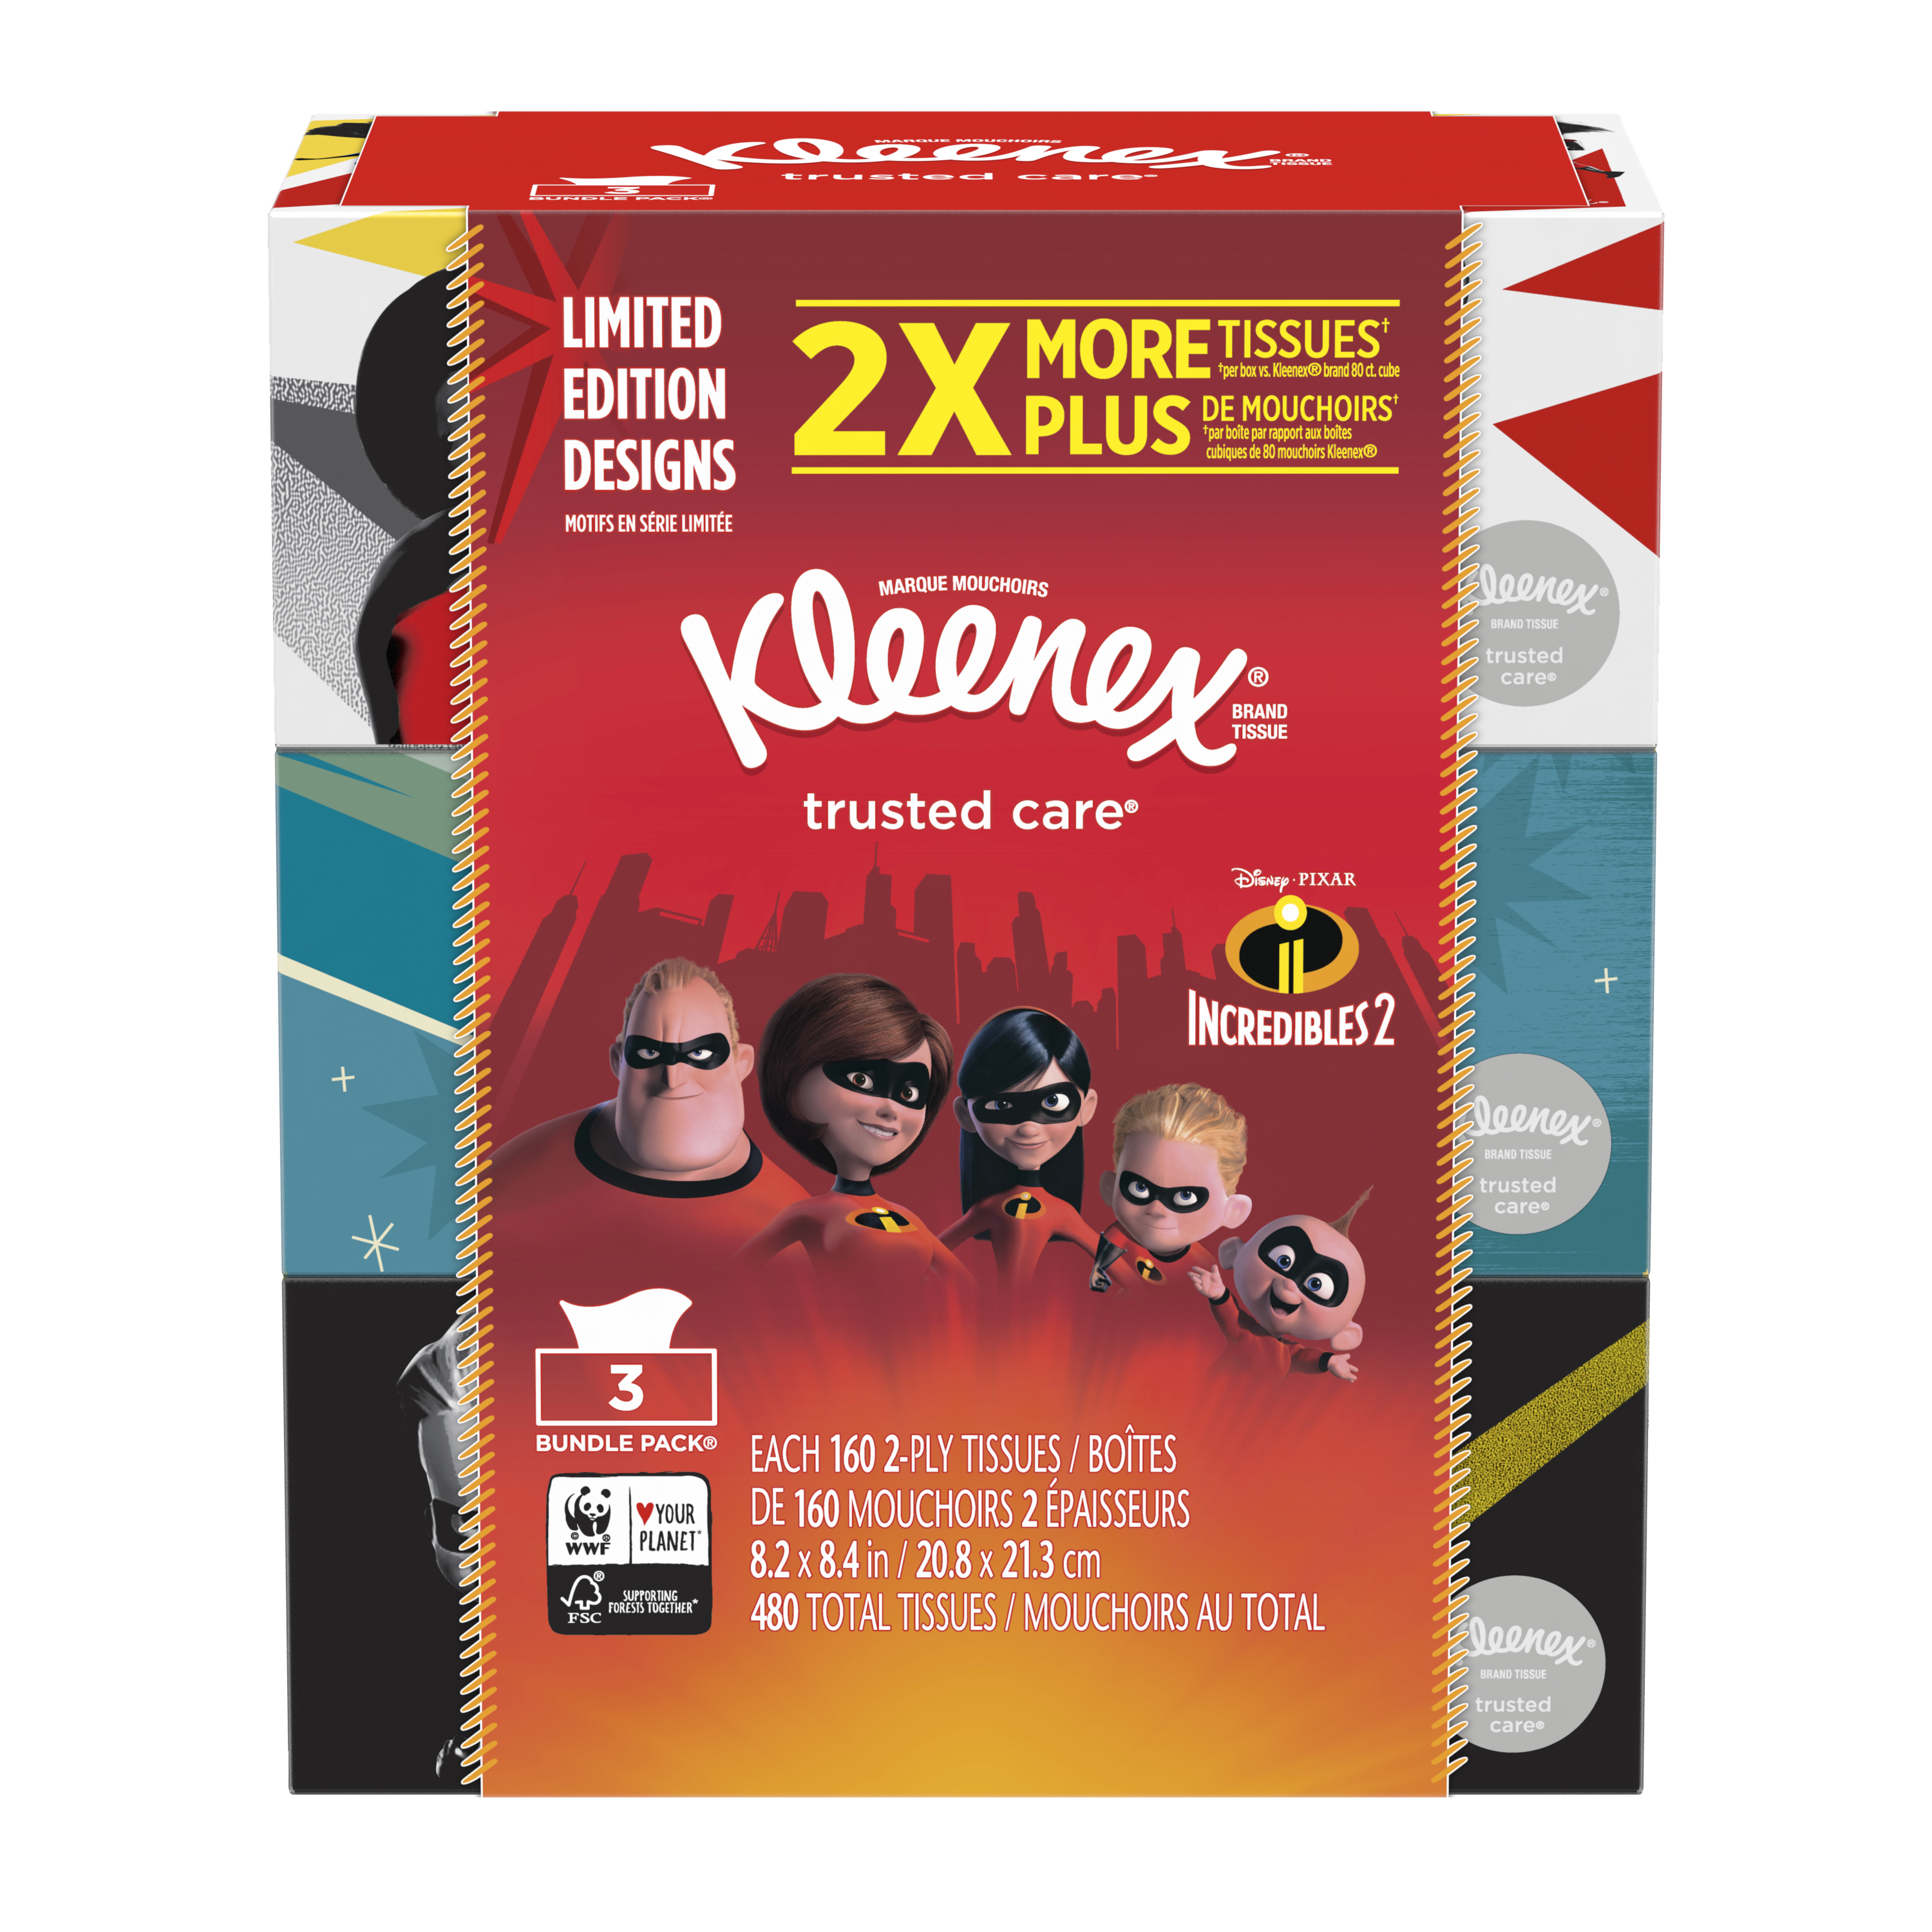 Kleenex Everyday, Non-Lotion, 'Incredibles 2', Limited Edition, 160 Facial Tissues per Box, 3 Flat Boxes